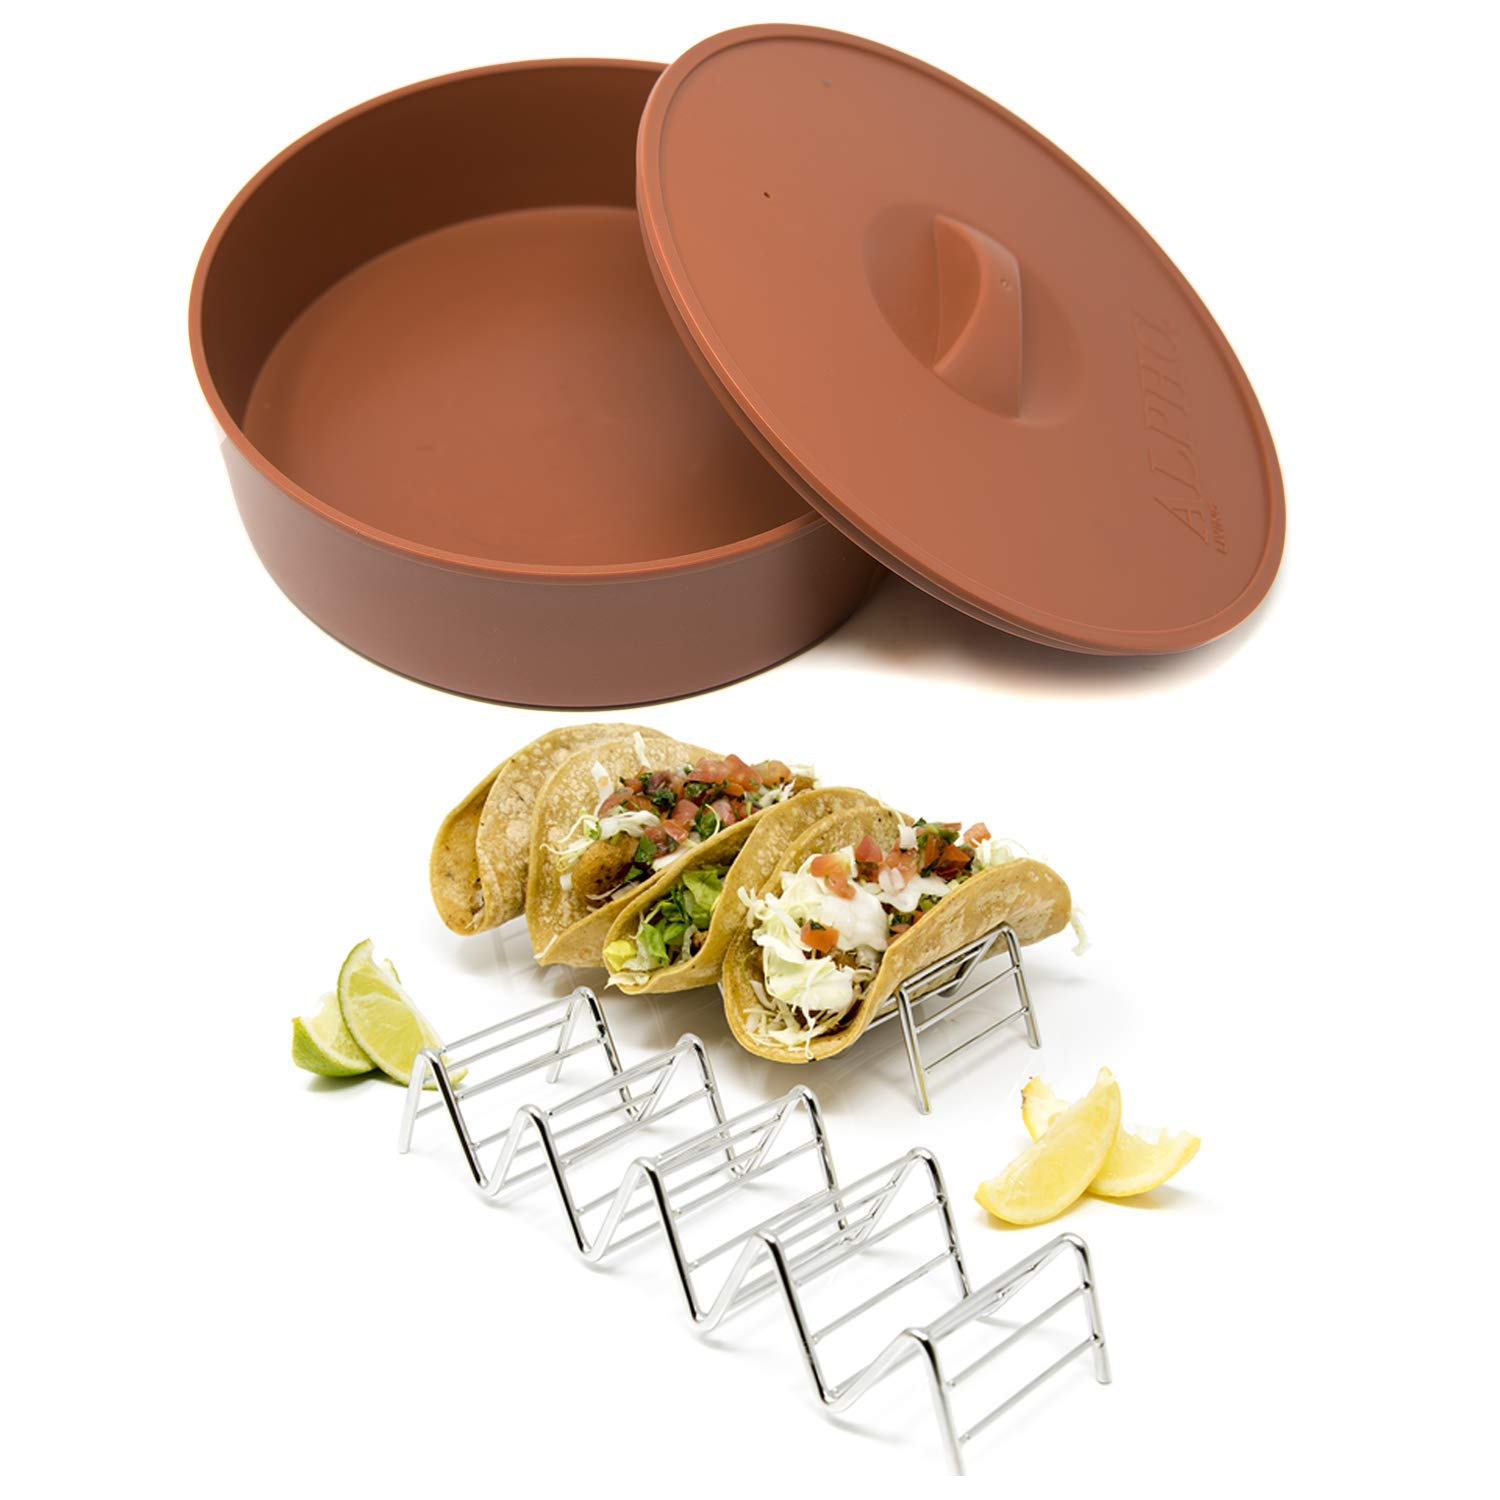 Alpha Living - Tortilla Warmer with 2 Taco Holder - 10 Inch Tortilla Server with Steam Release Hole Microwavable and Insulated - Stainless Steel Taco Holder